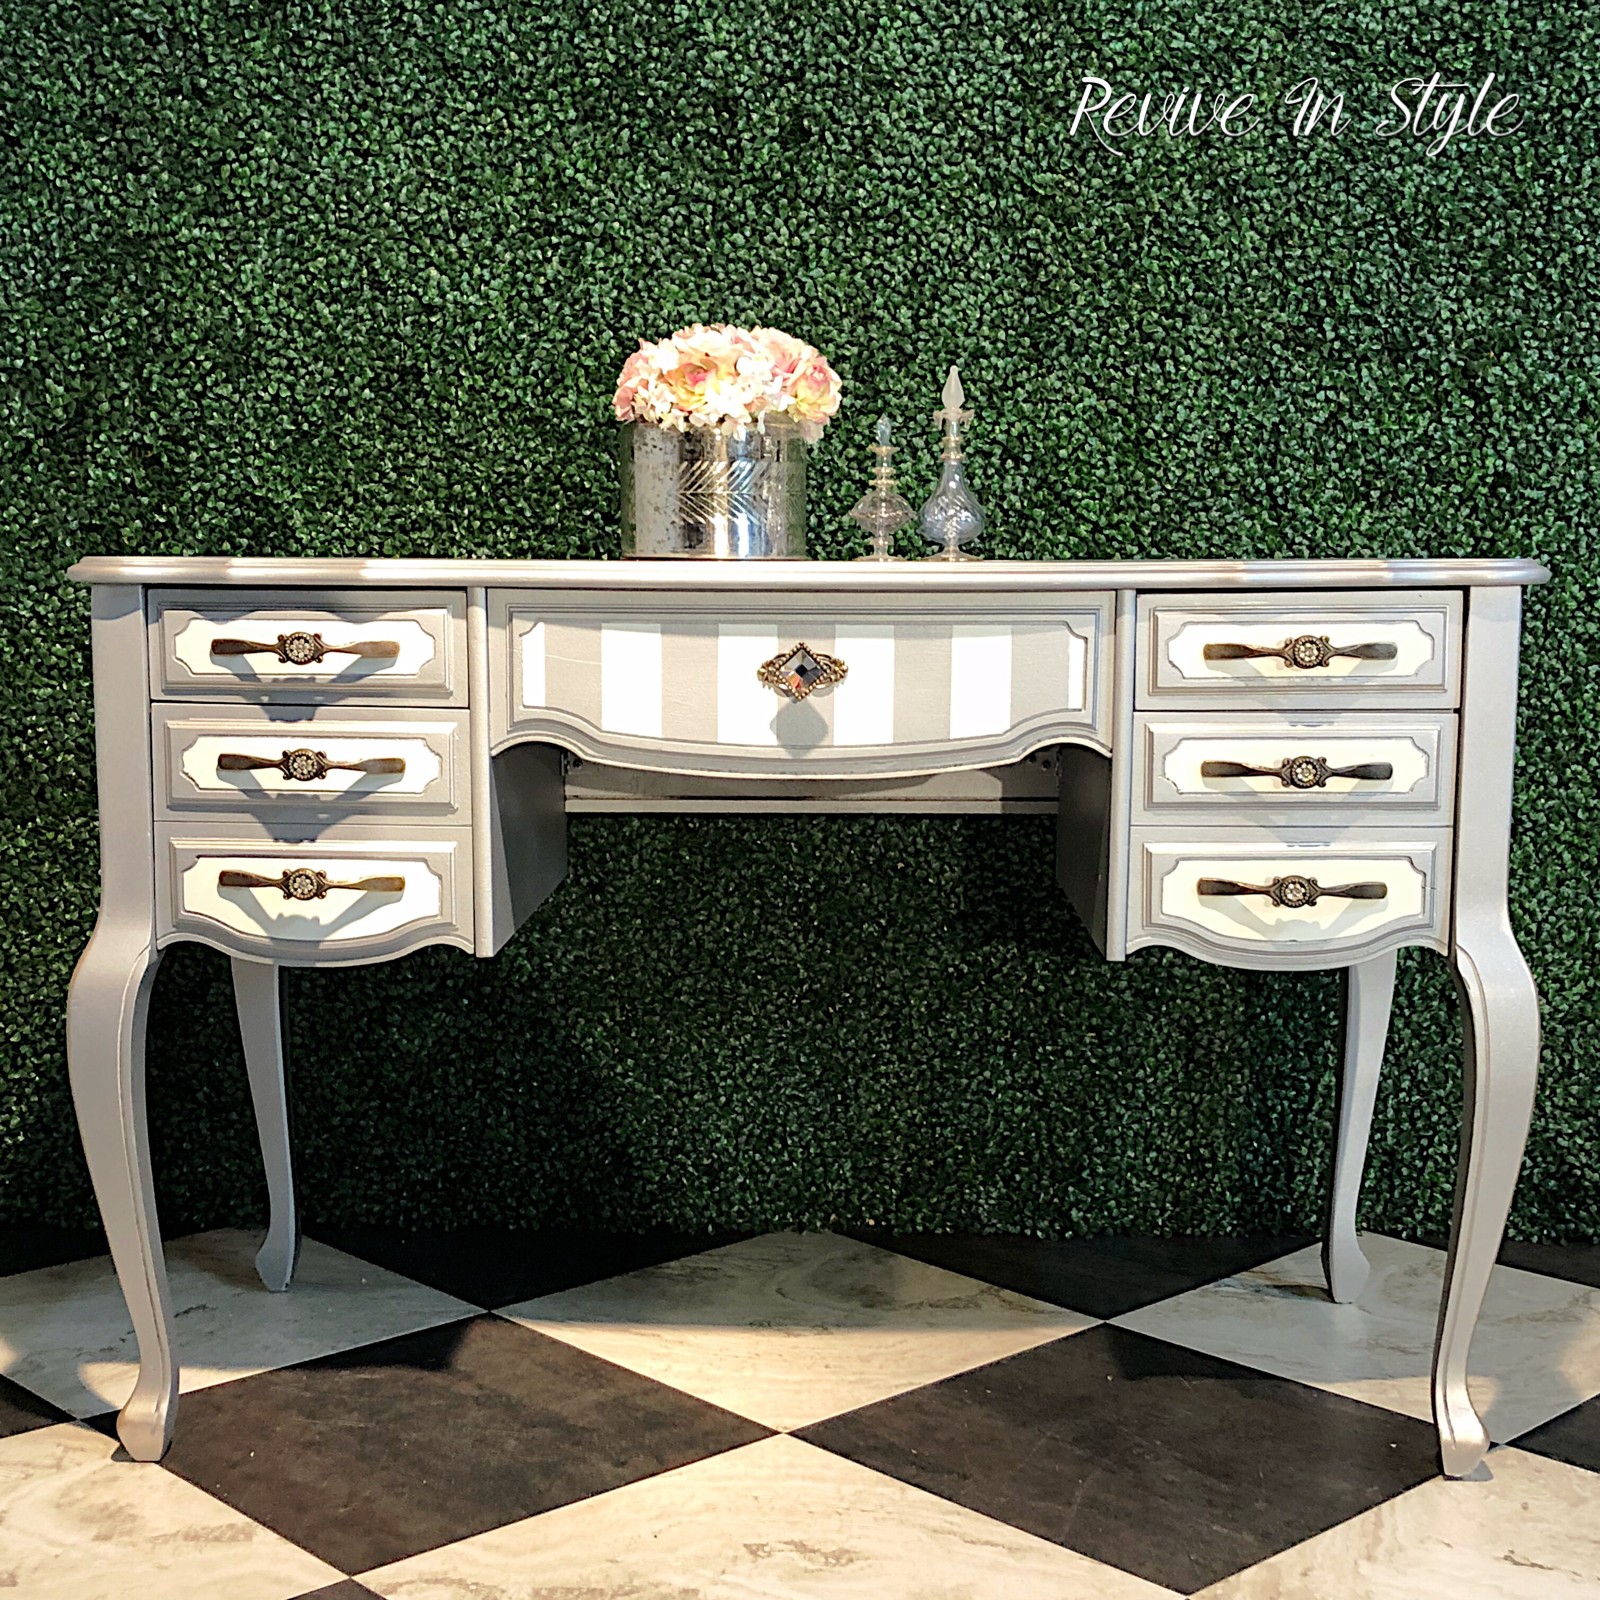 Painted and refinished vintage and antique furniture by revive in style general finishes shabby paints heirloom traditions and modern masters used